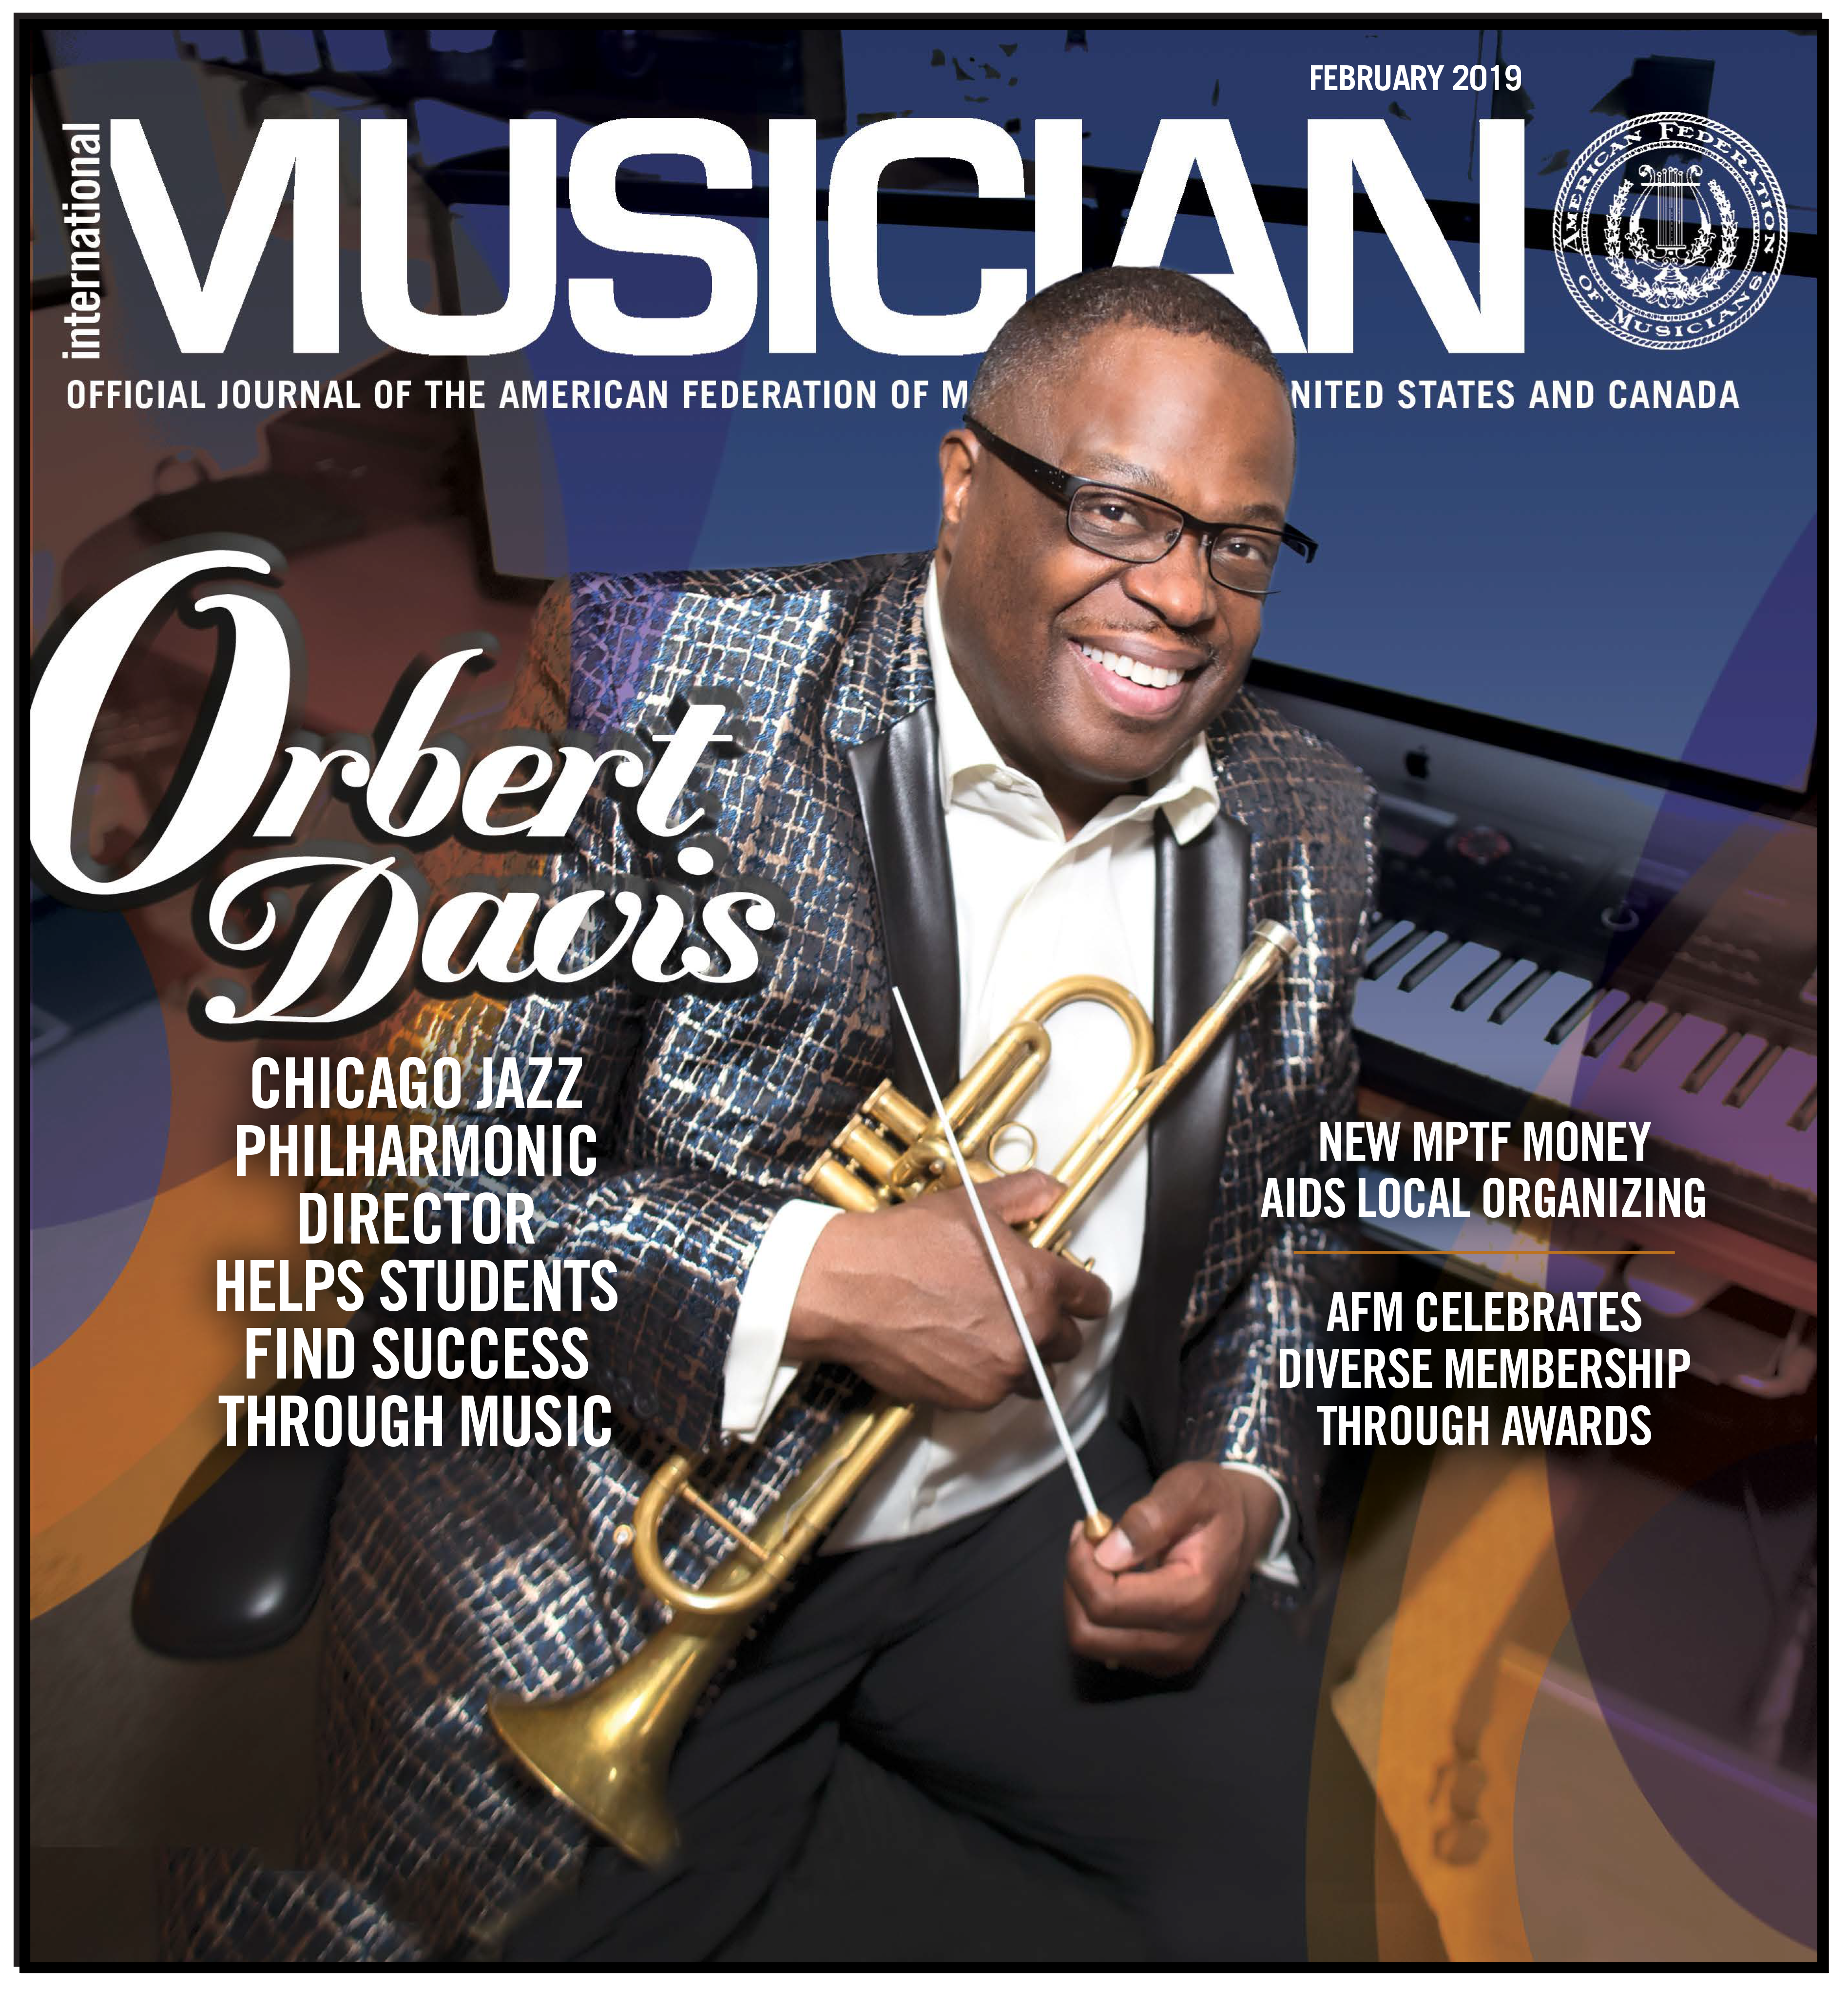 V117-02- February 2019 - International Musician Magazine